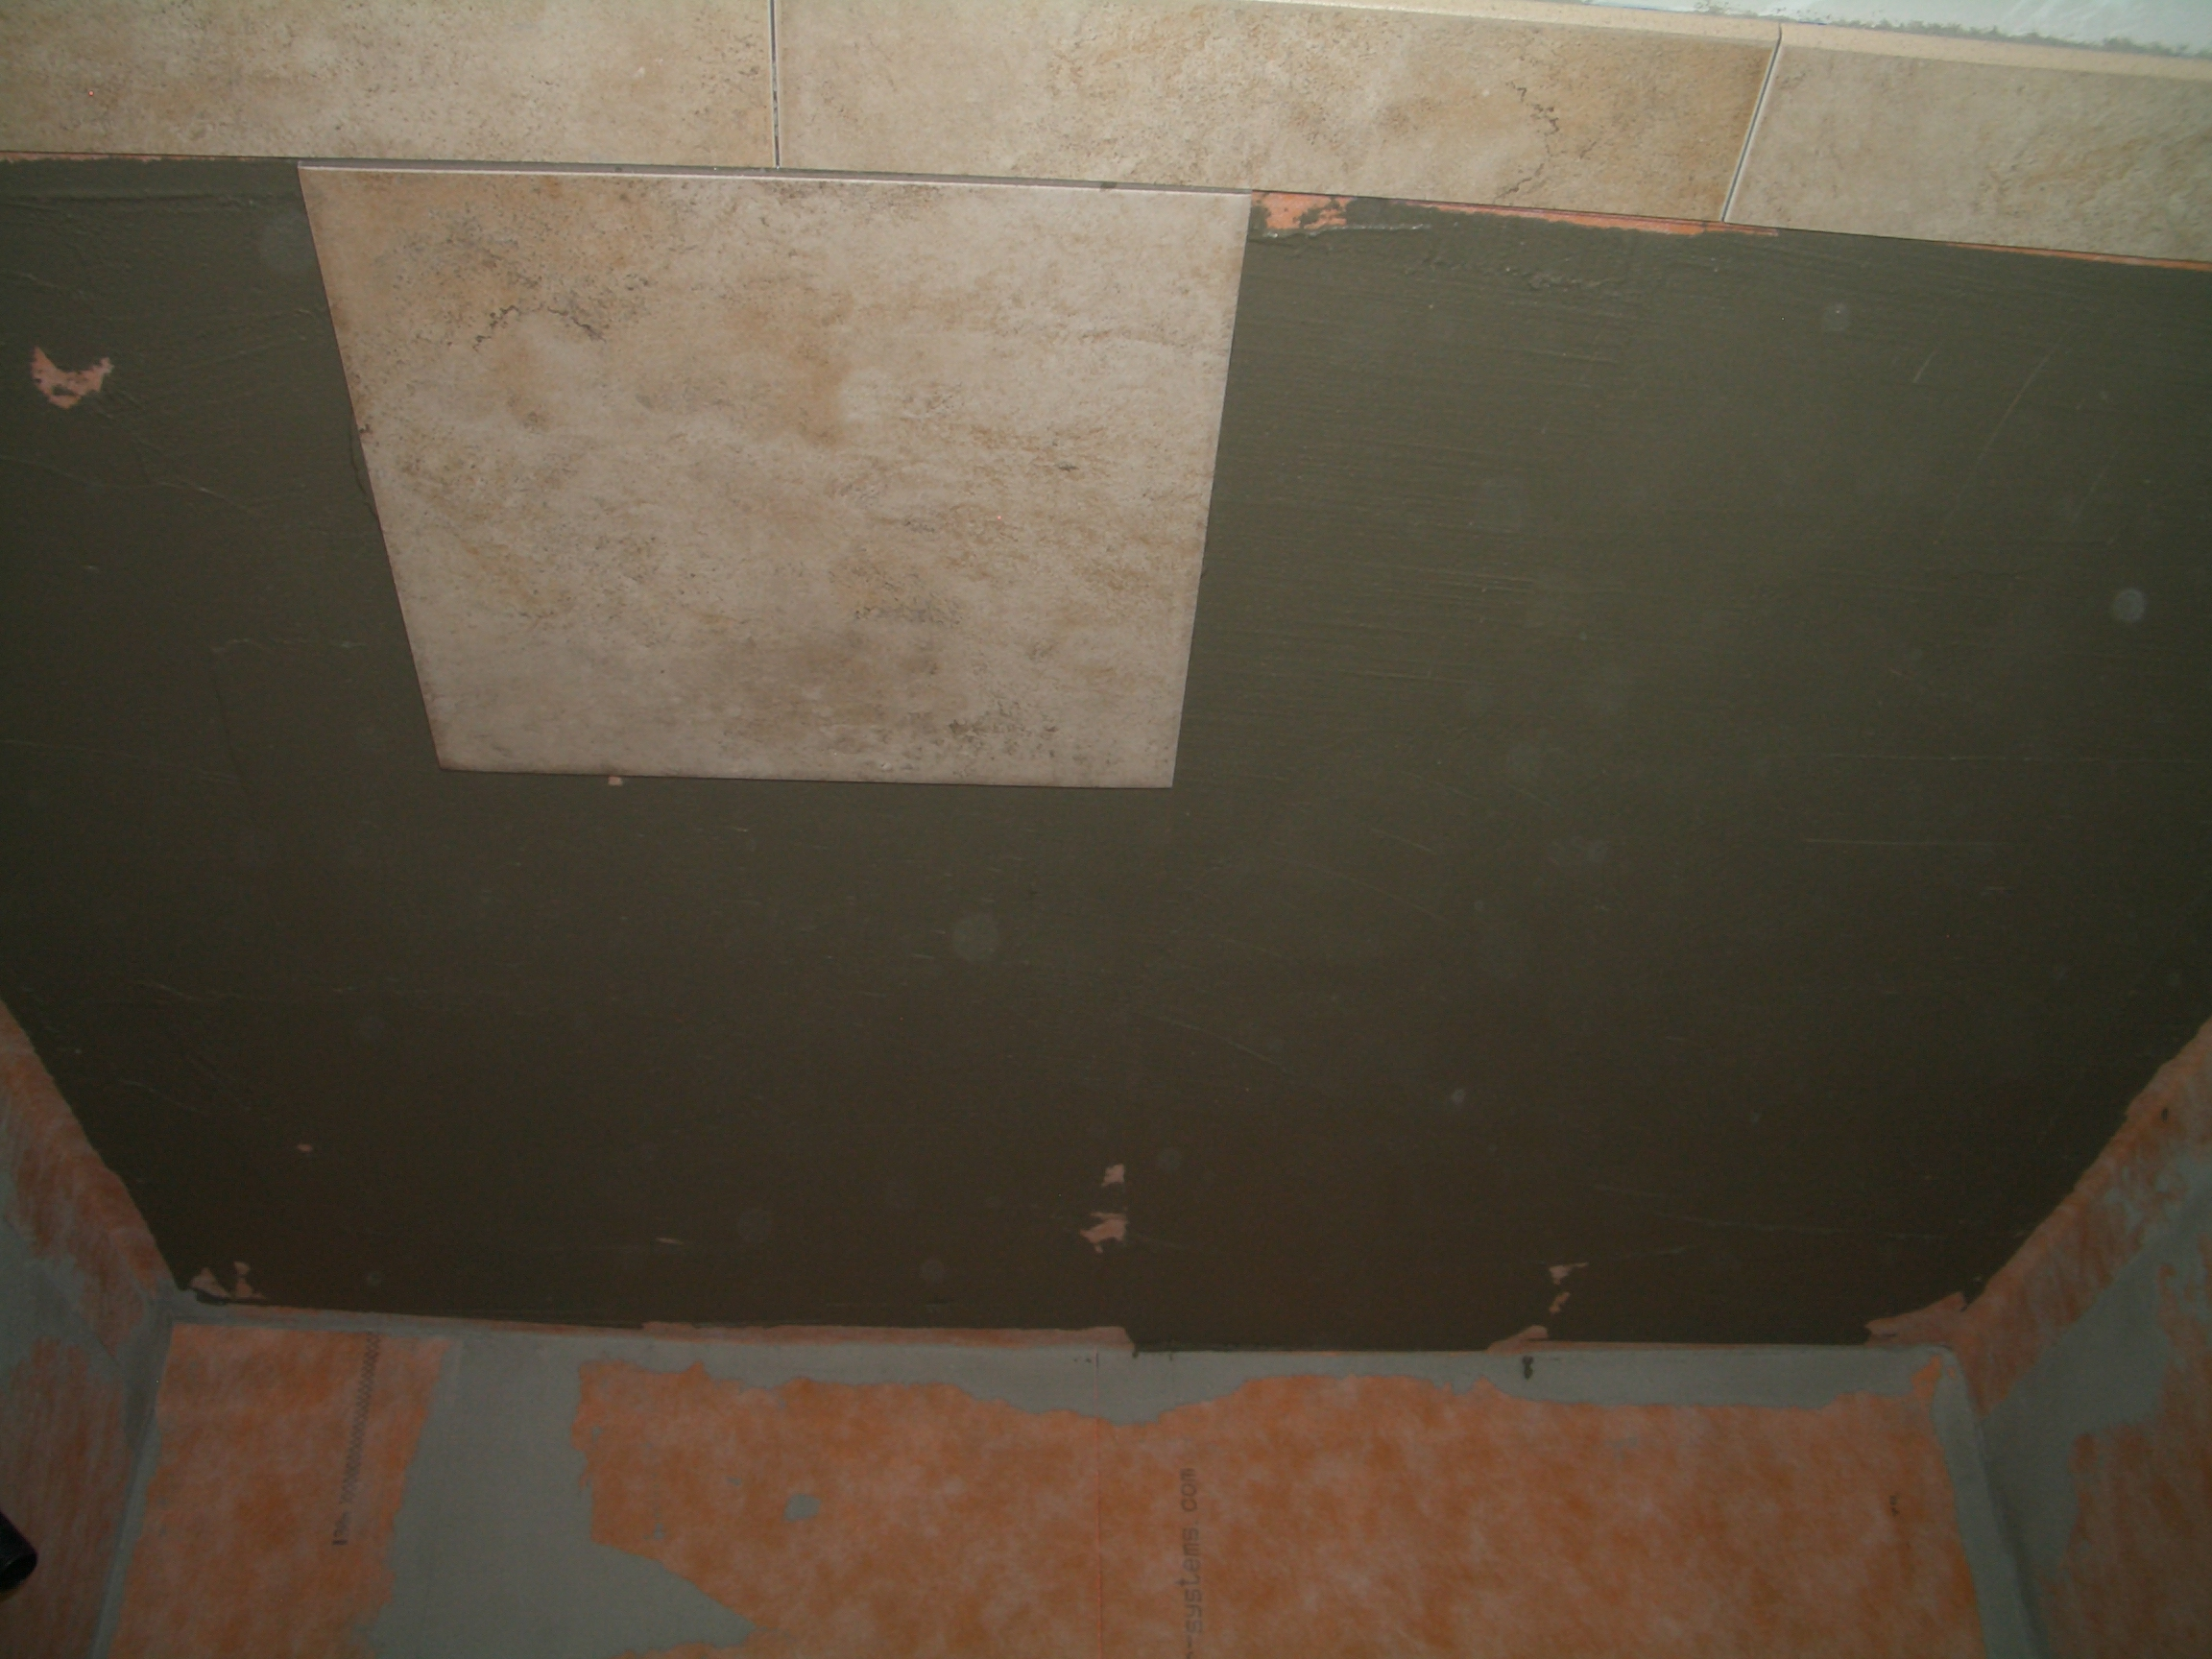 How to install tile on a shower ceiling tile stuck to ceiling of shower dailygadgetfo Image collections